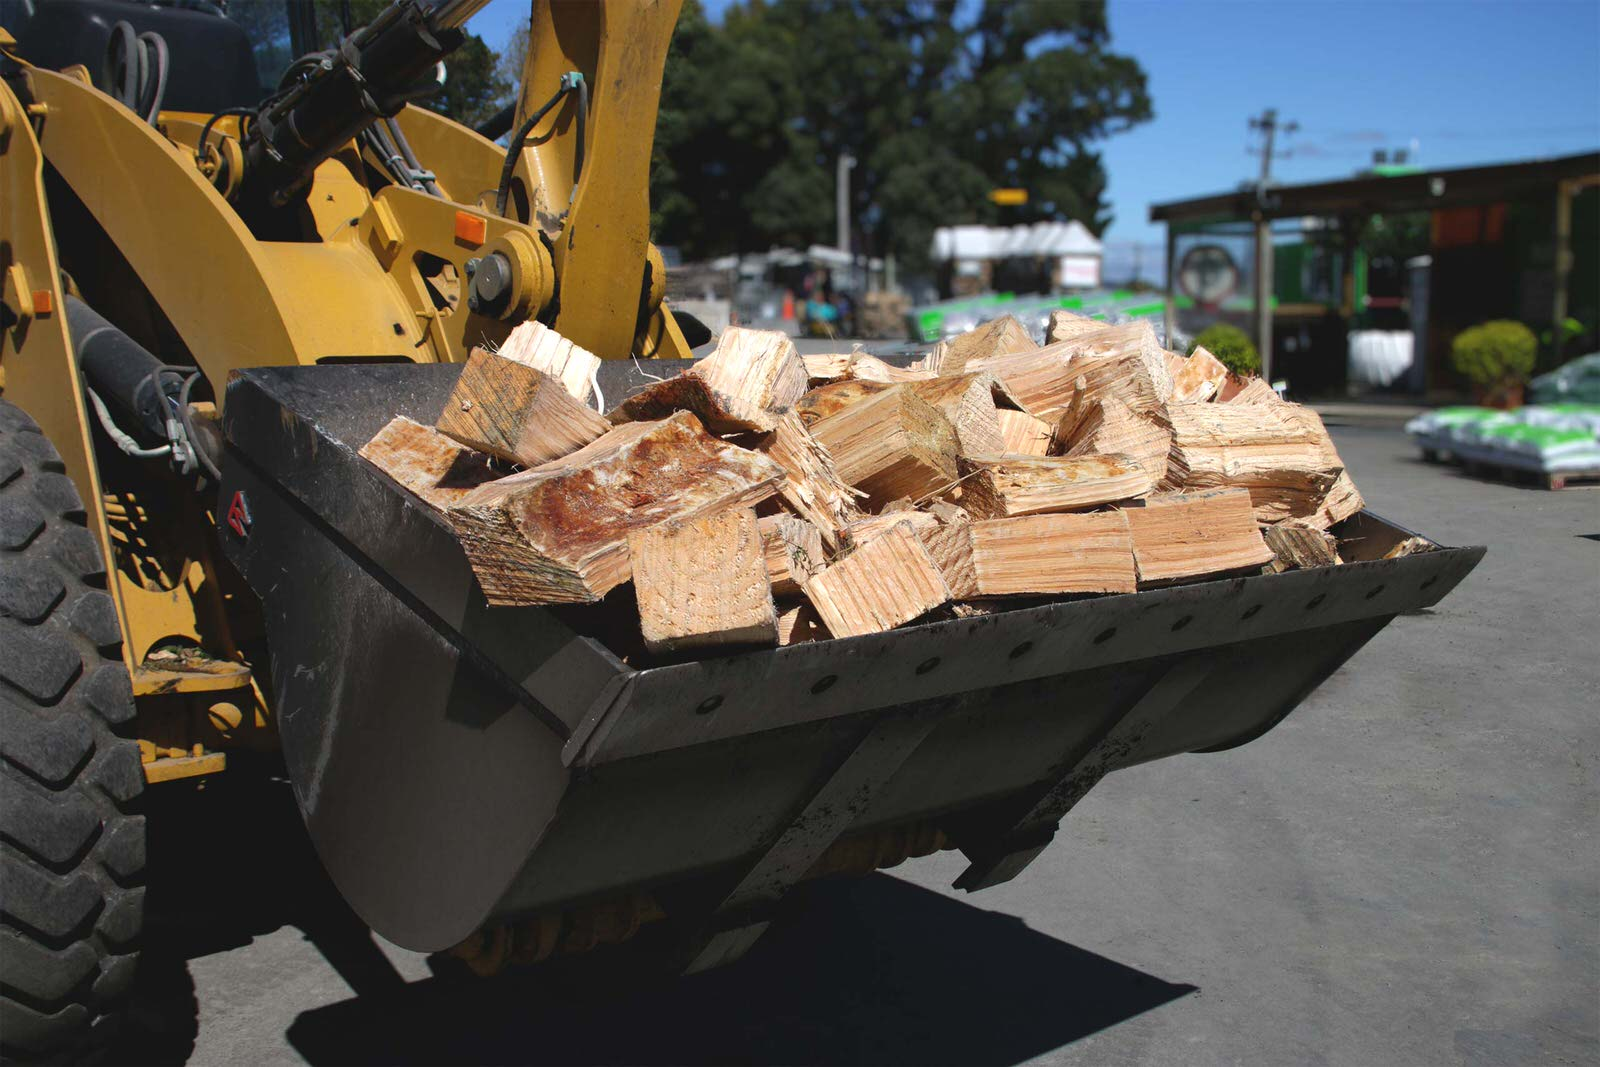 Firewood-by-scoop from Composting New Zealand. Equals 1/2 cubic metre